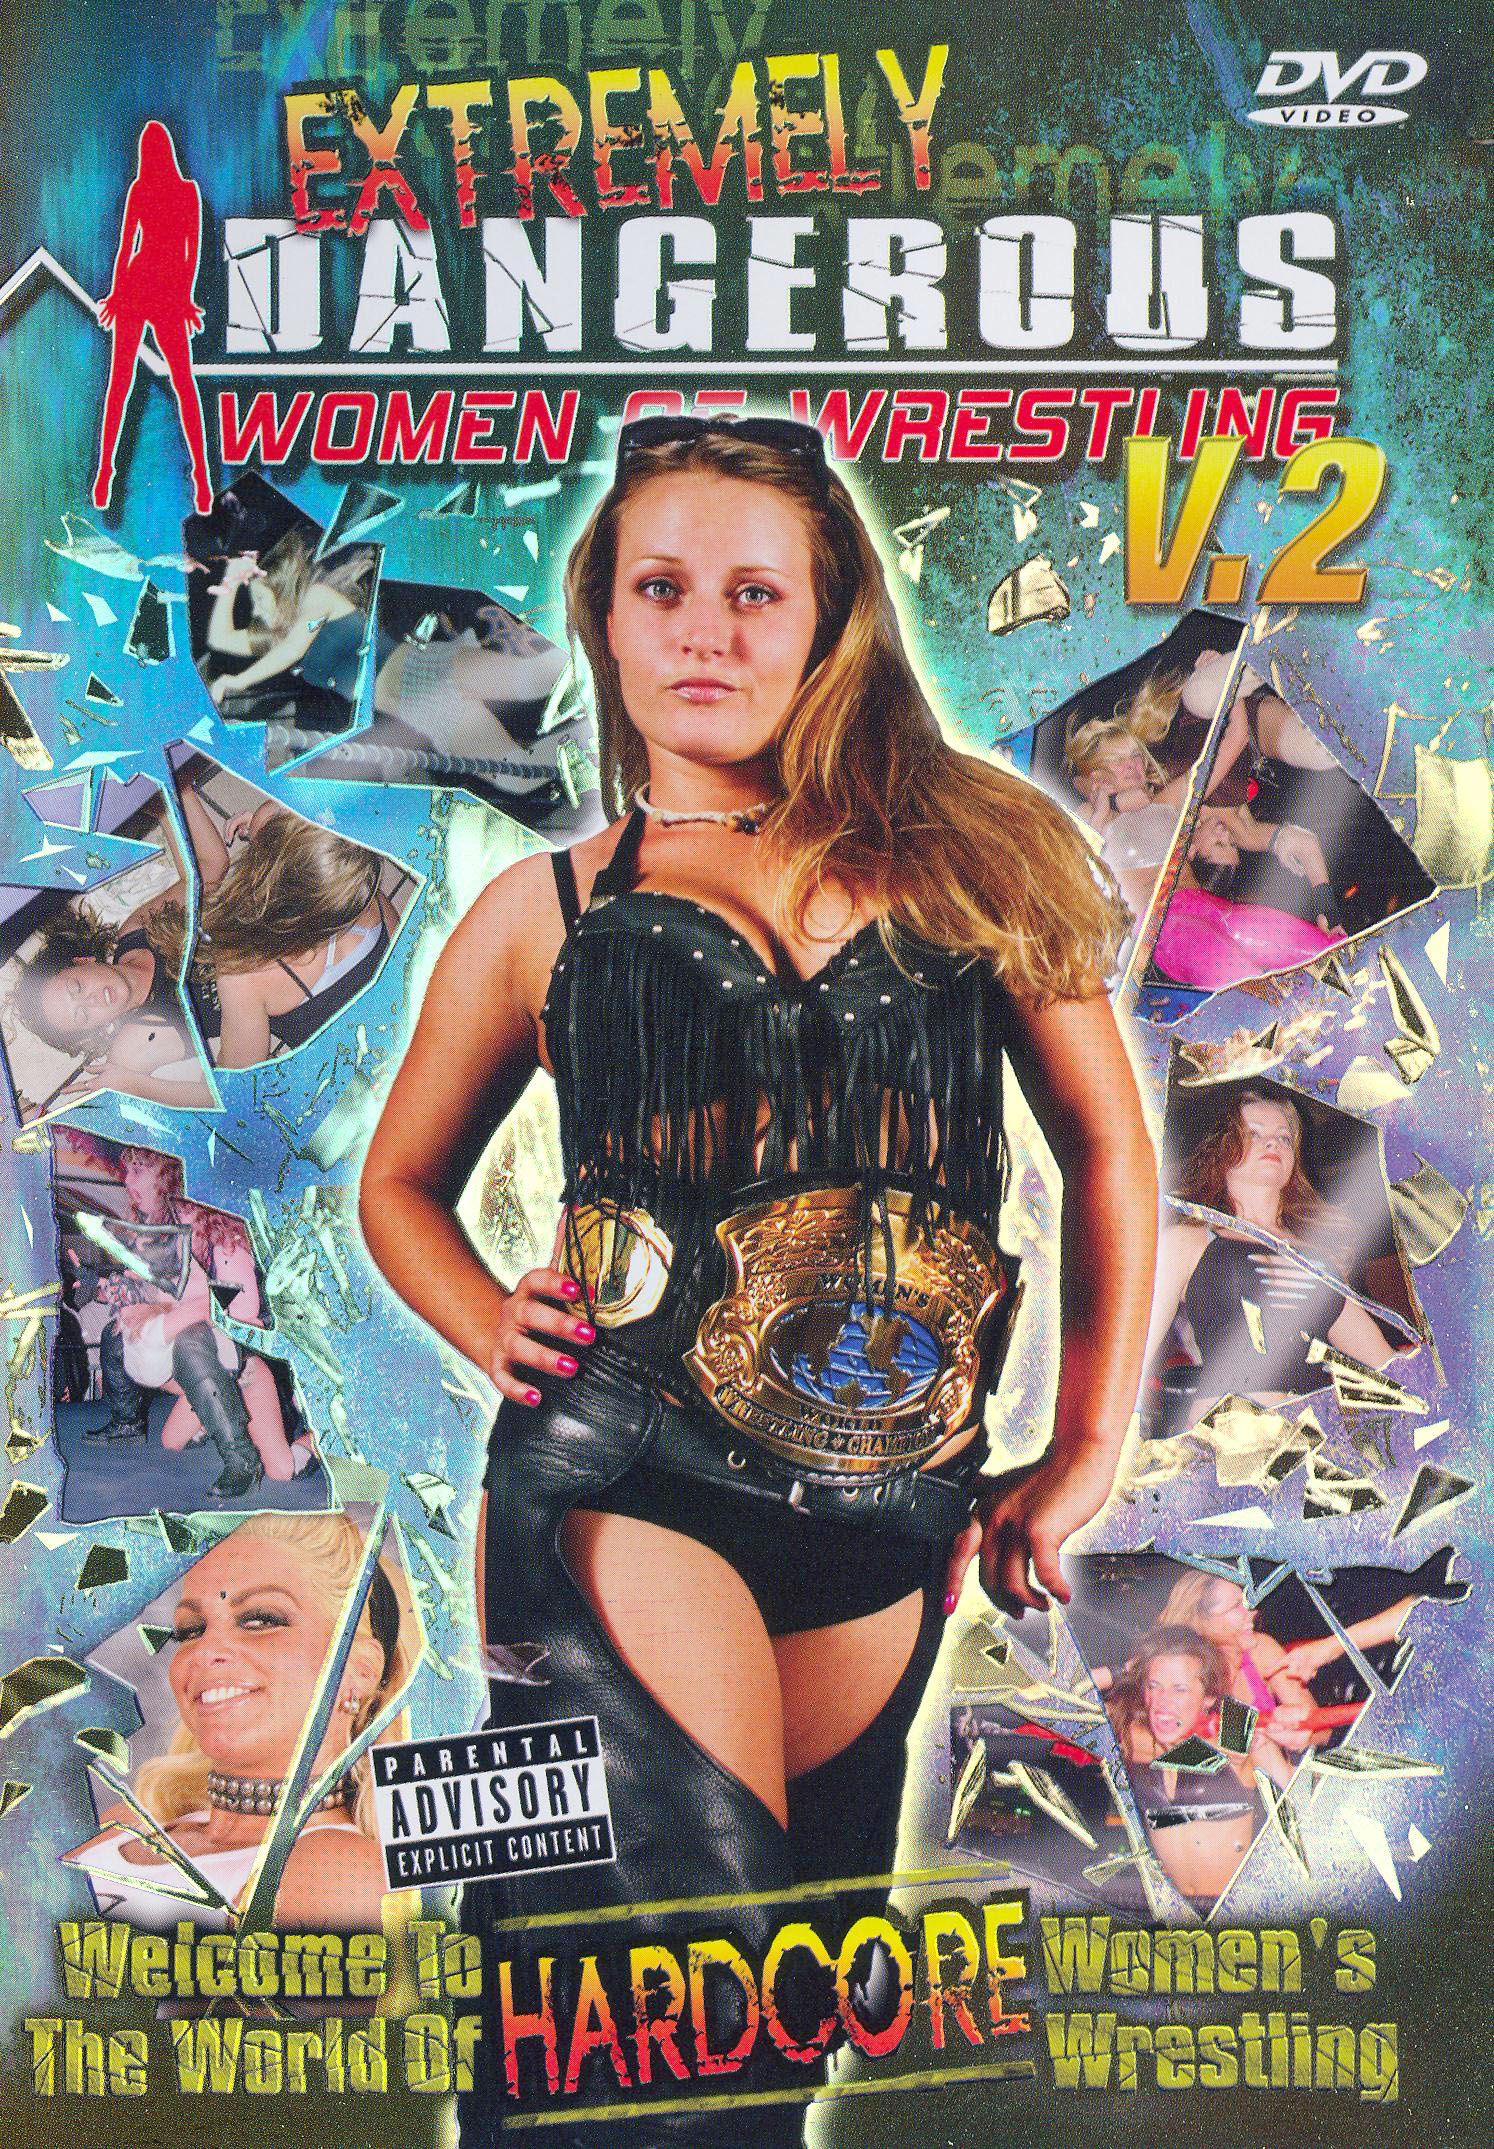 World Wrestling Network Presents: Extremely Dangerous Women of Wrestling, Vol. 2 (2007)